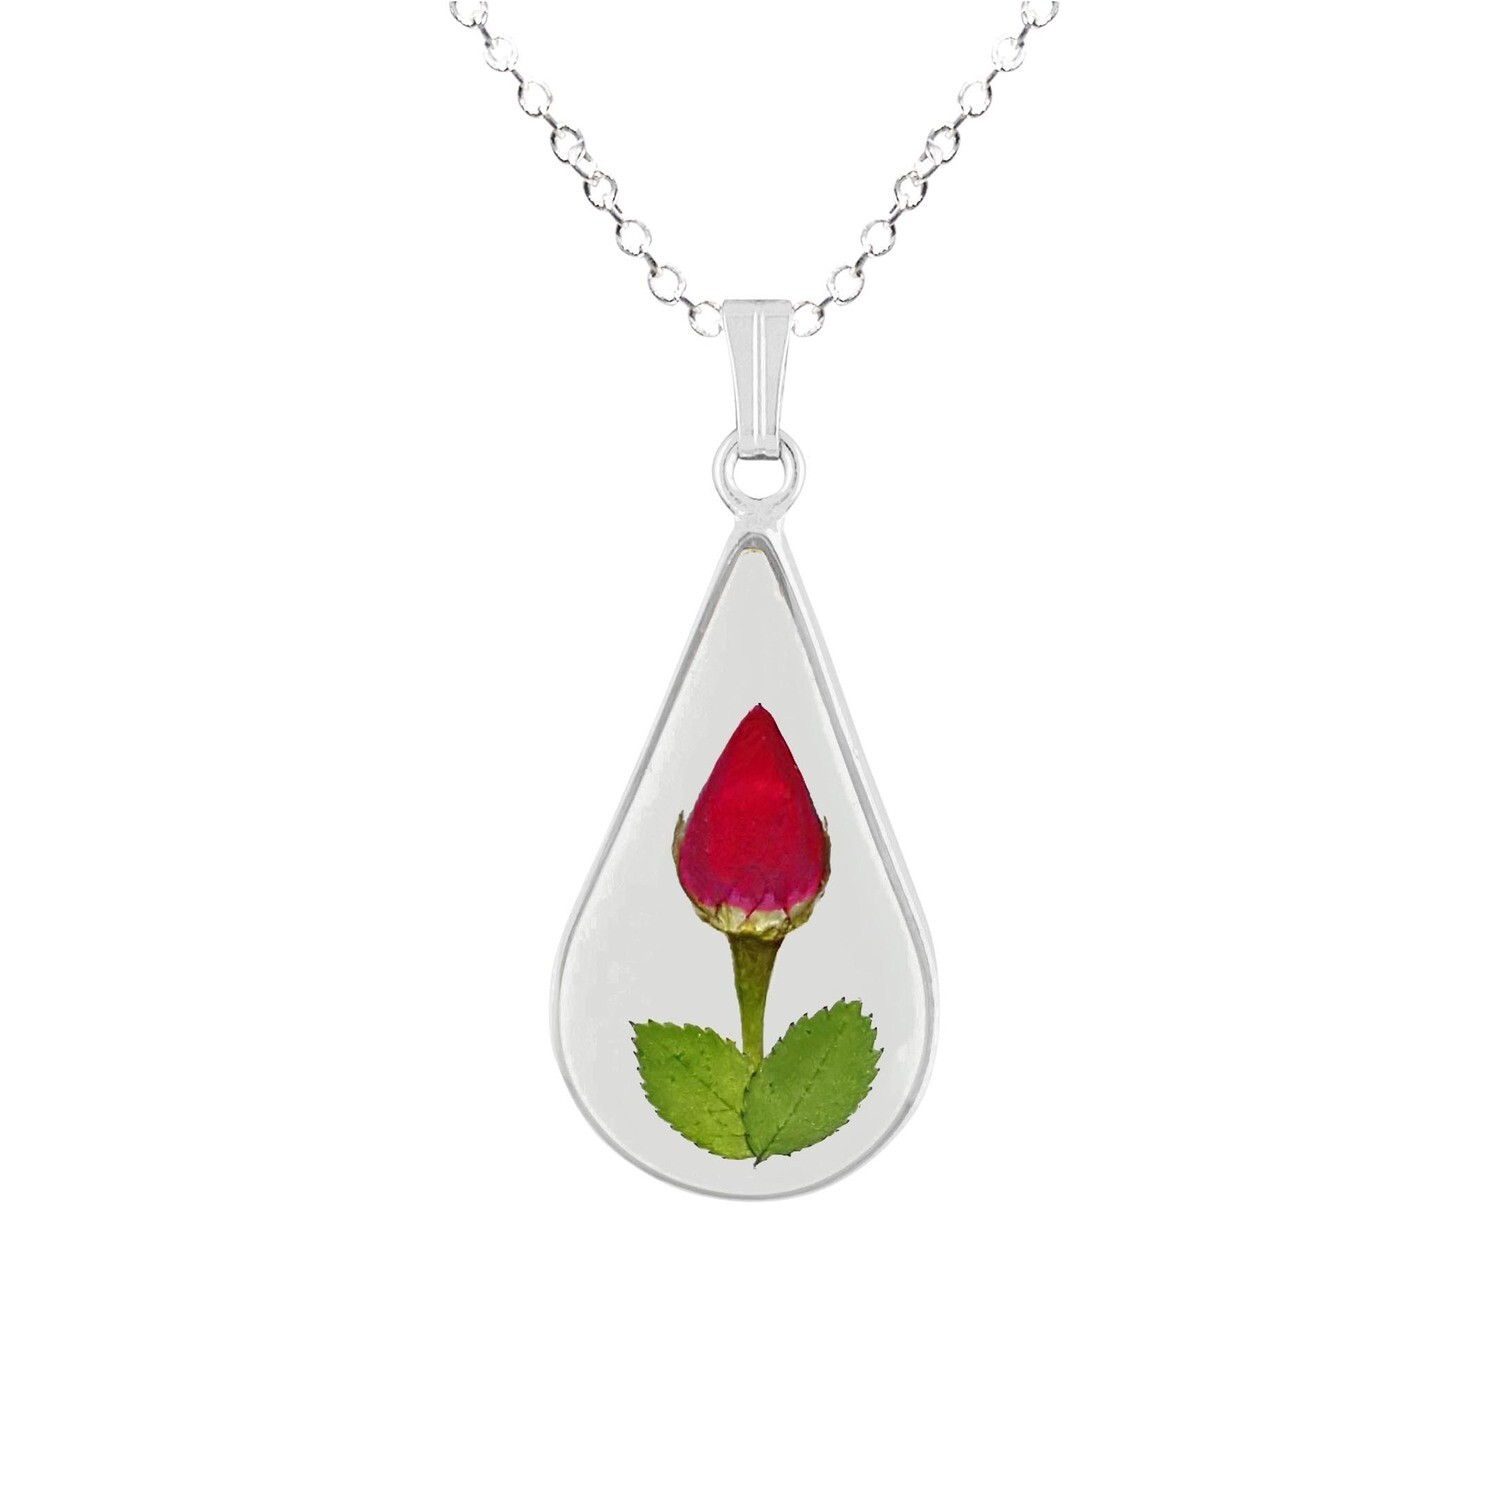 Rose Necklace, Medium Teardrop, Transparent